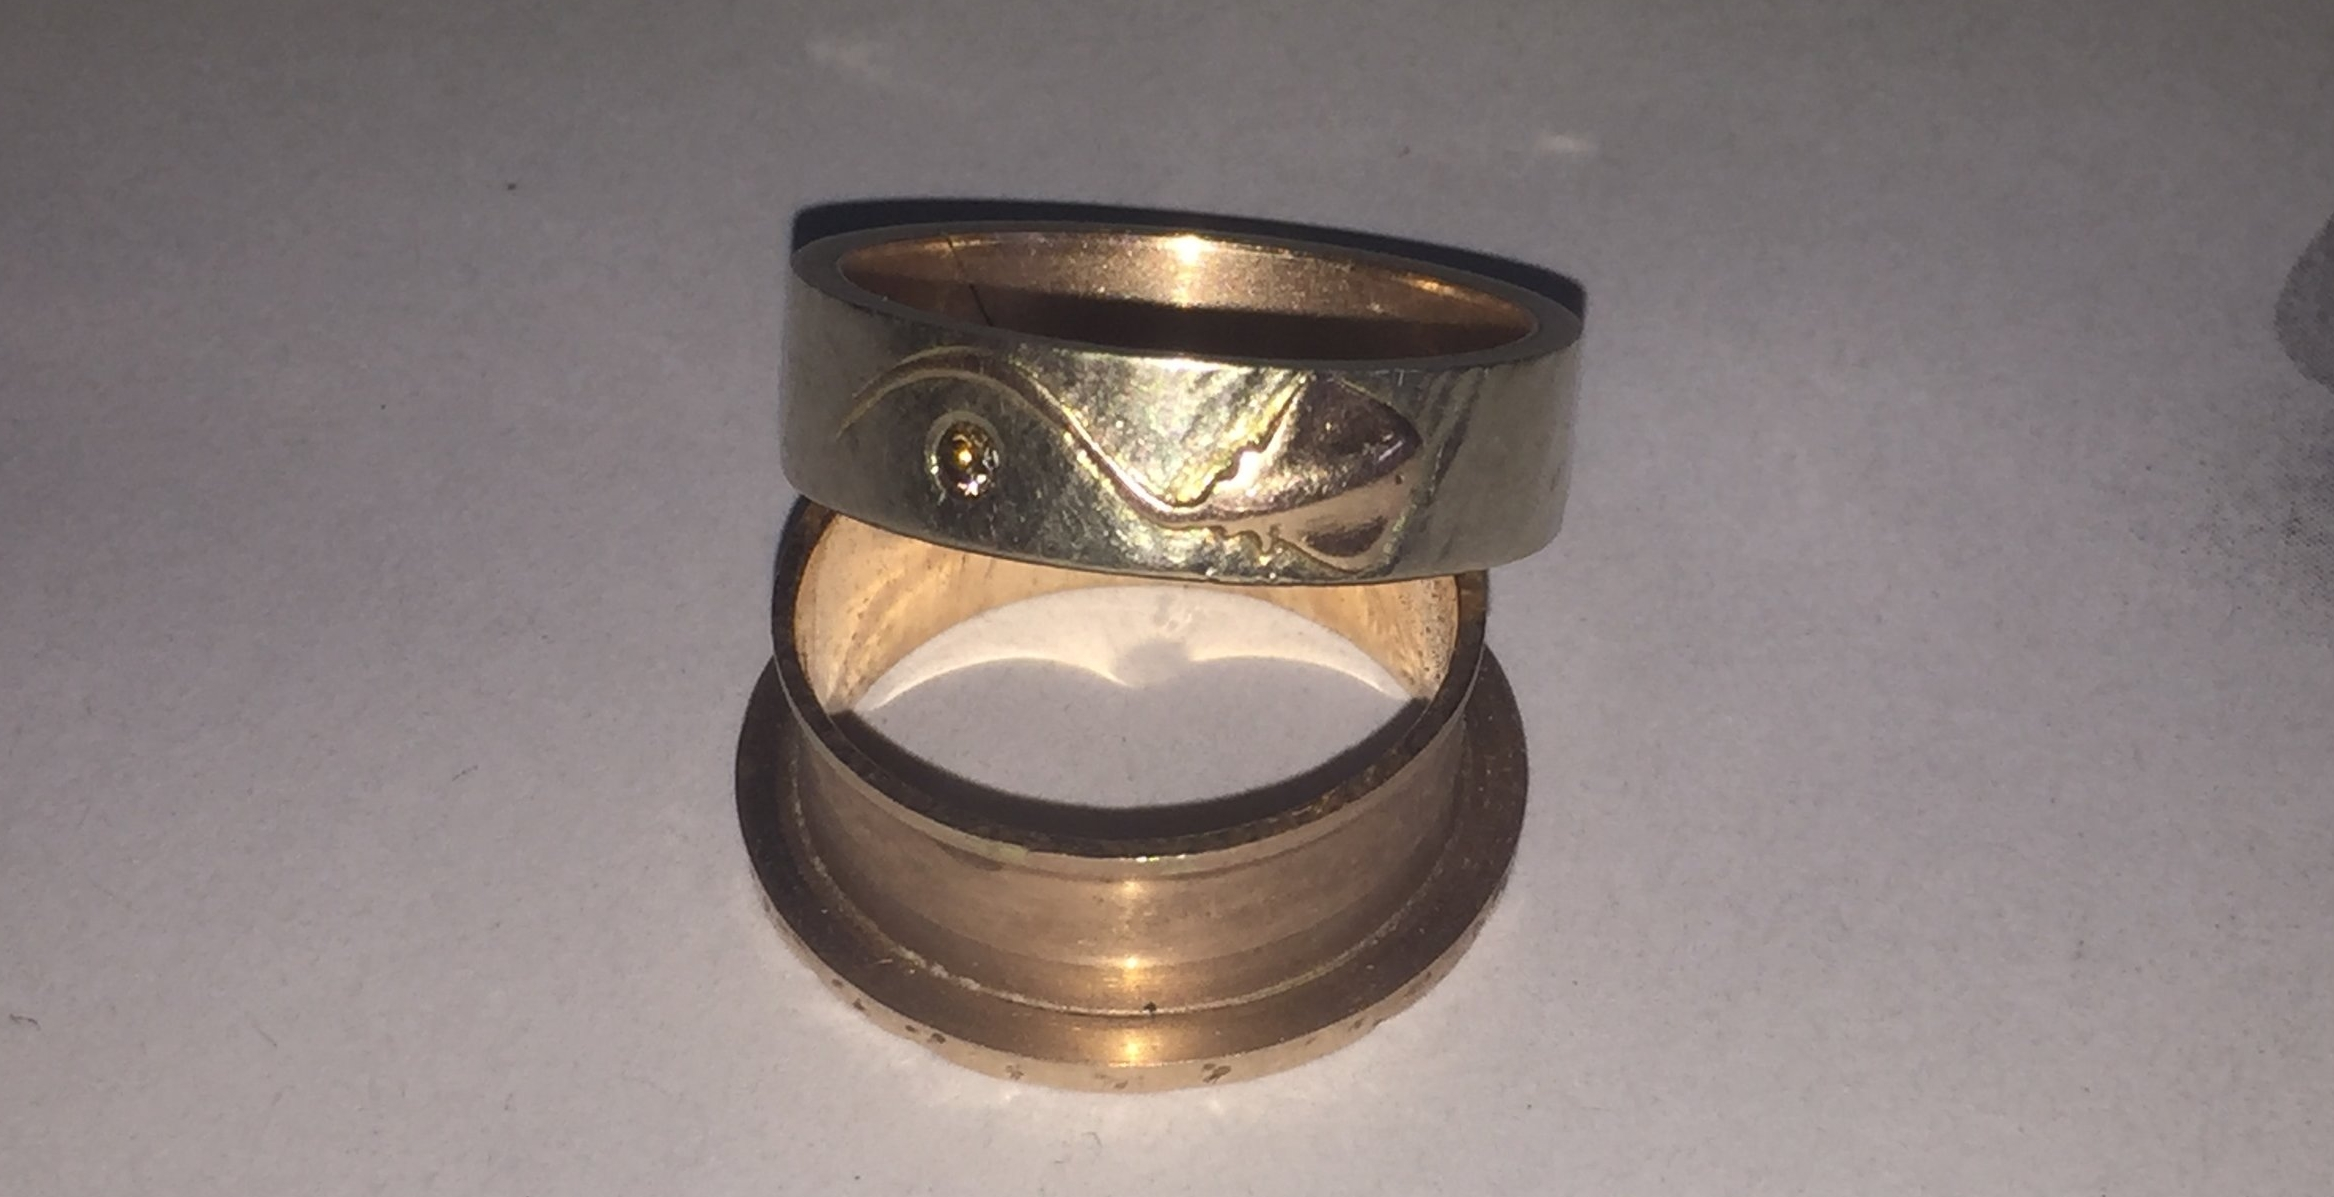 The two rings had parted ways.